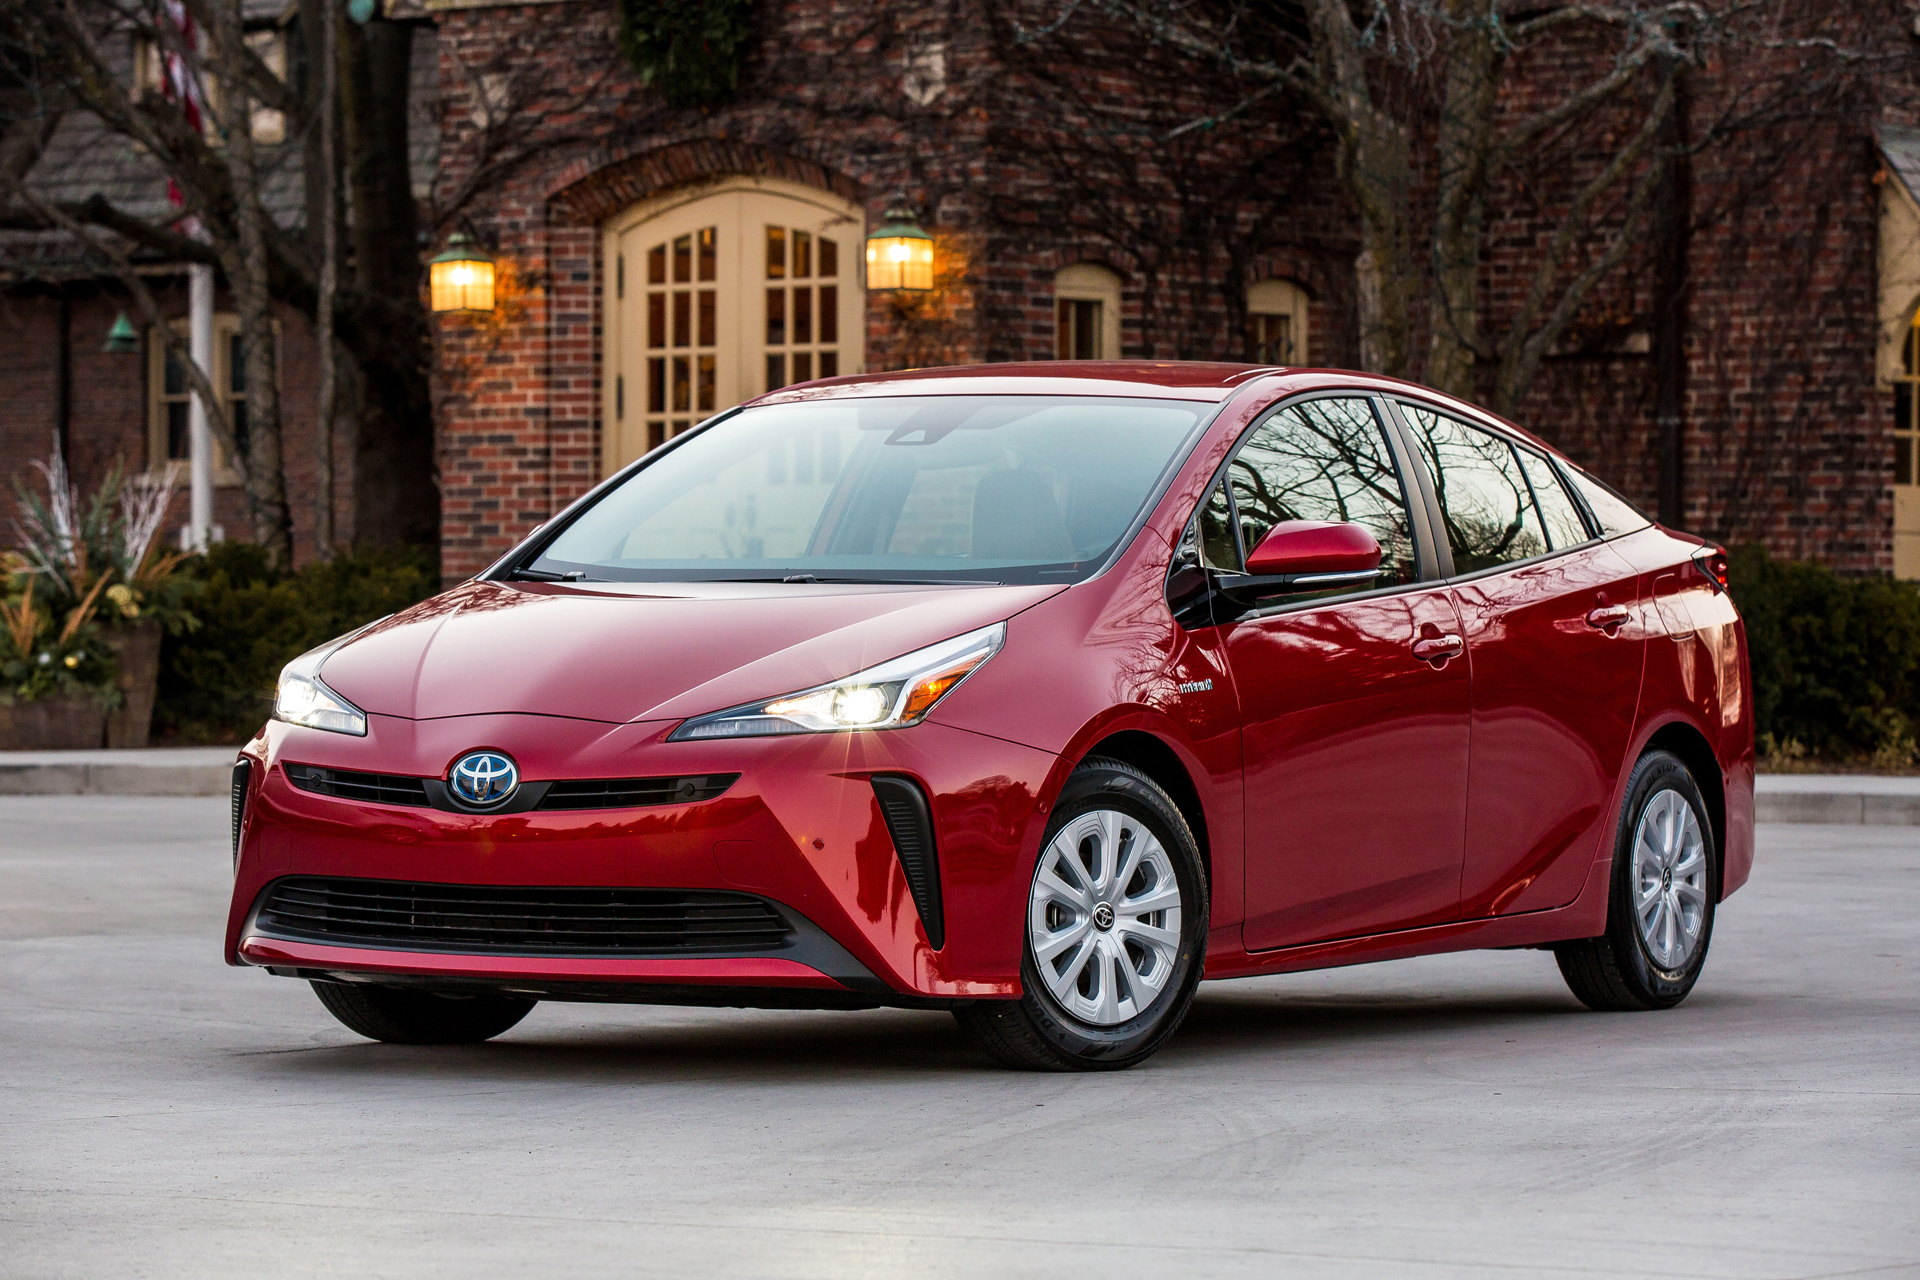 2020 toyota prius: up to 56 mpg, now with carplay and